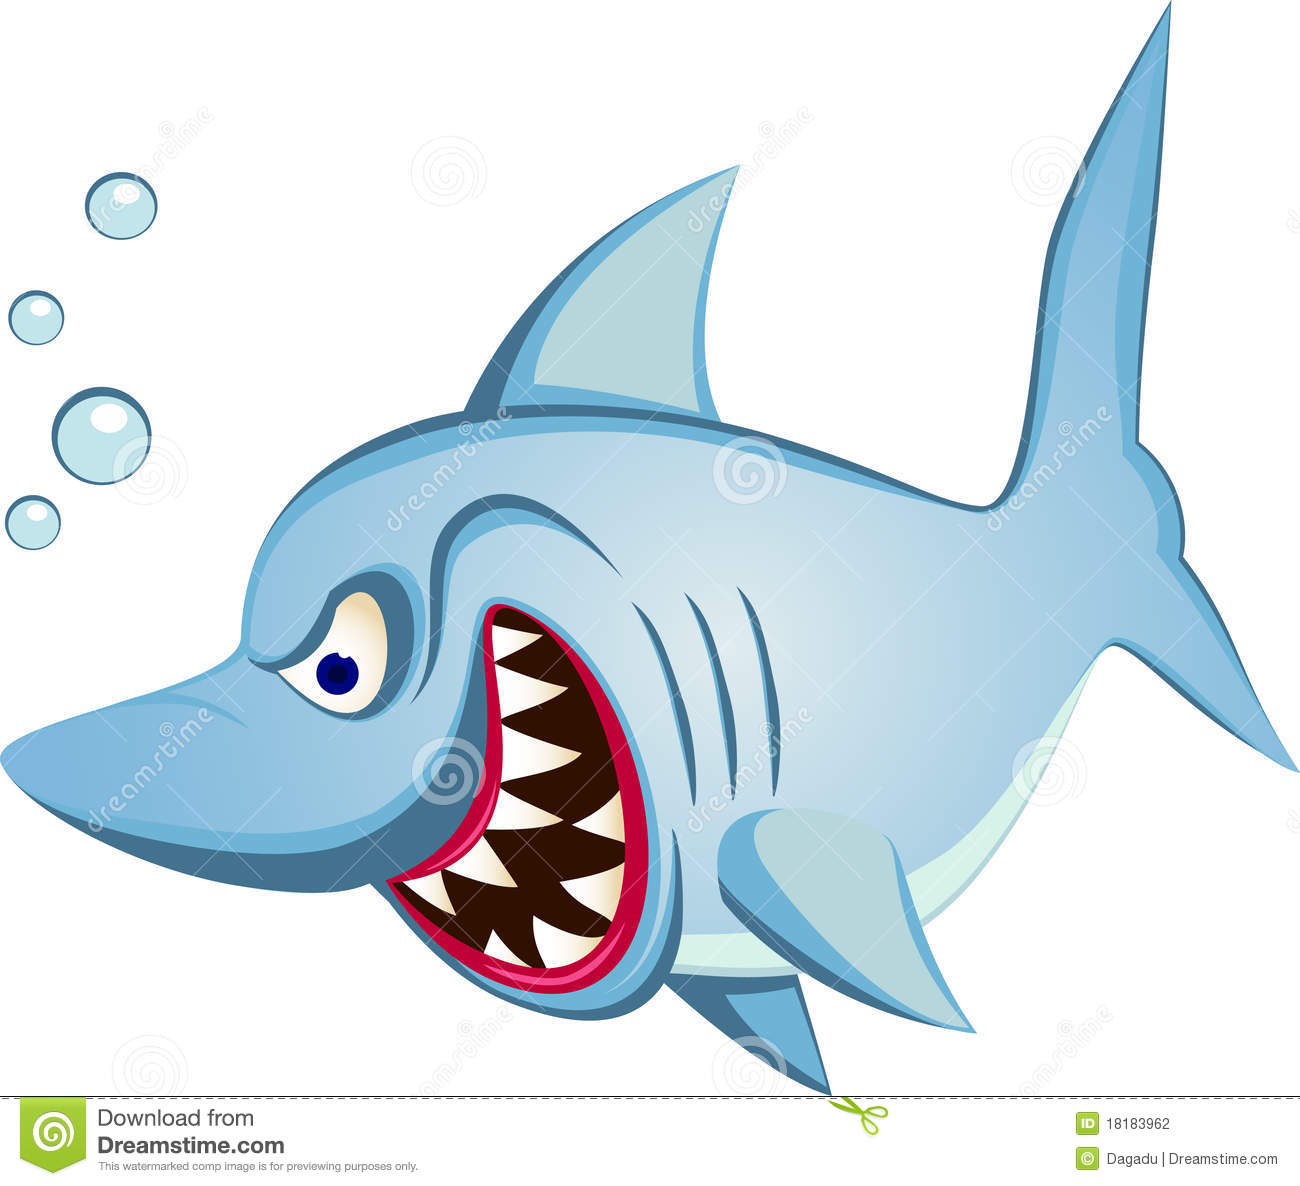 shark-cartoon-18183962.jpg